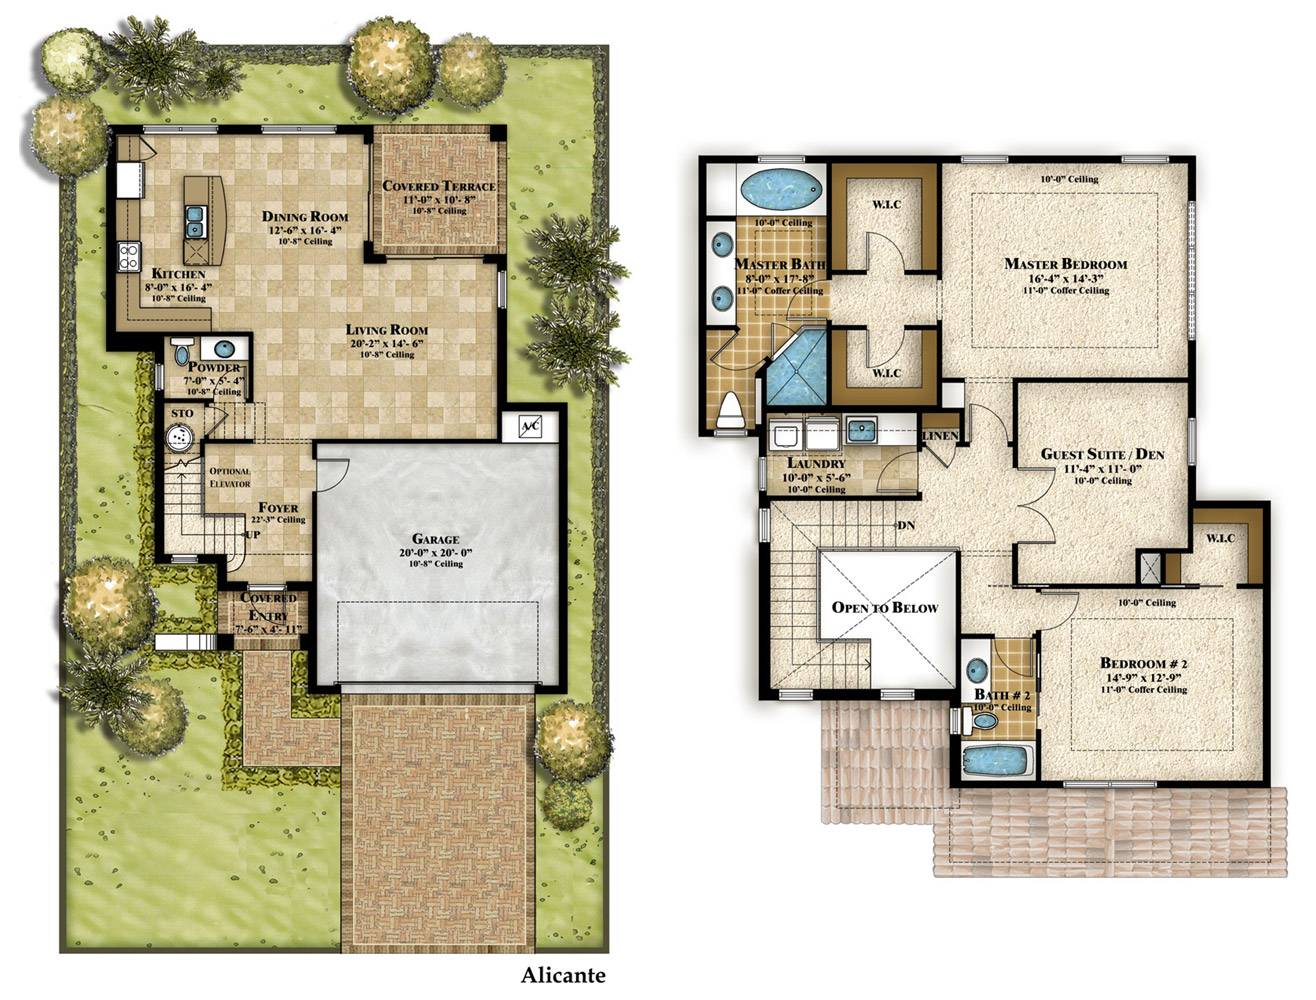 Standard Height Two Story House Best Interior Decorating Ideas House Plans 36685